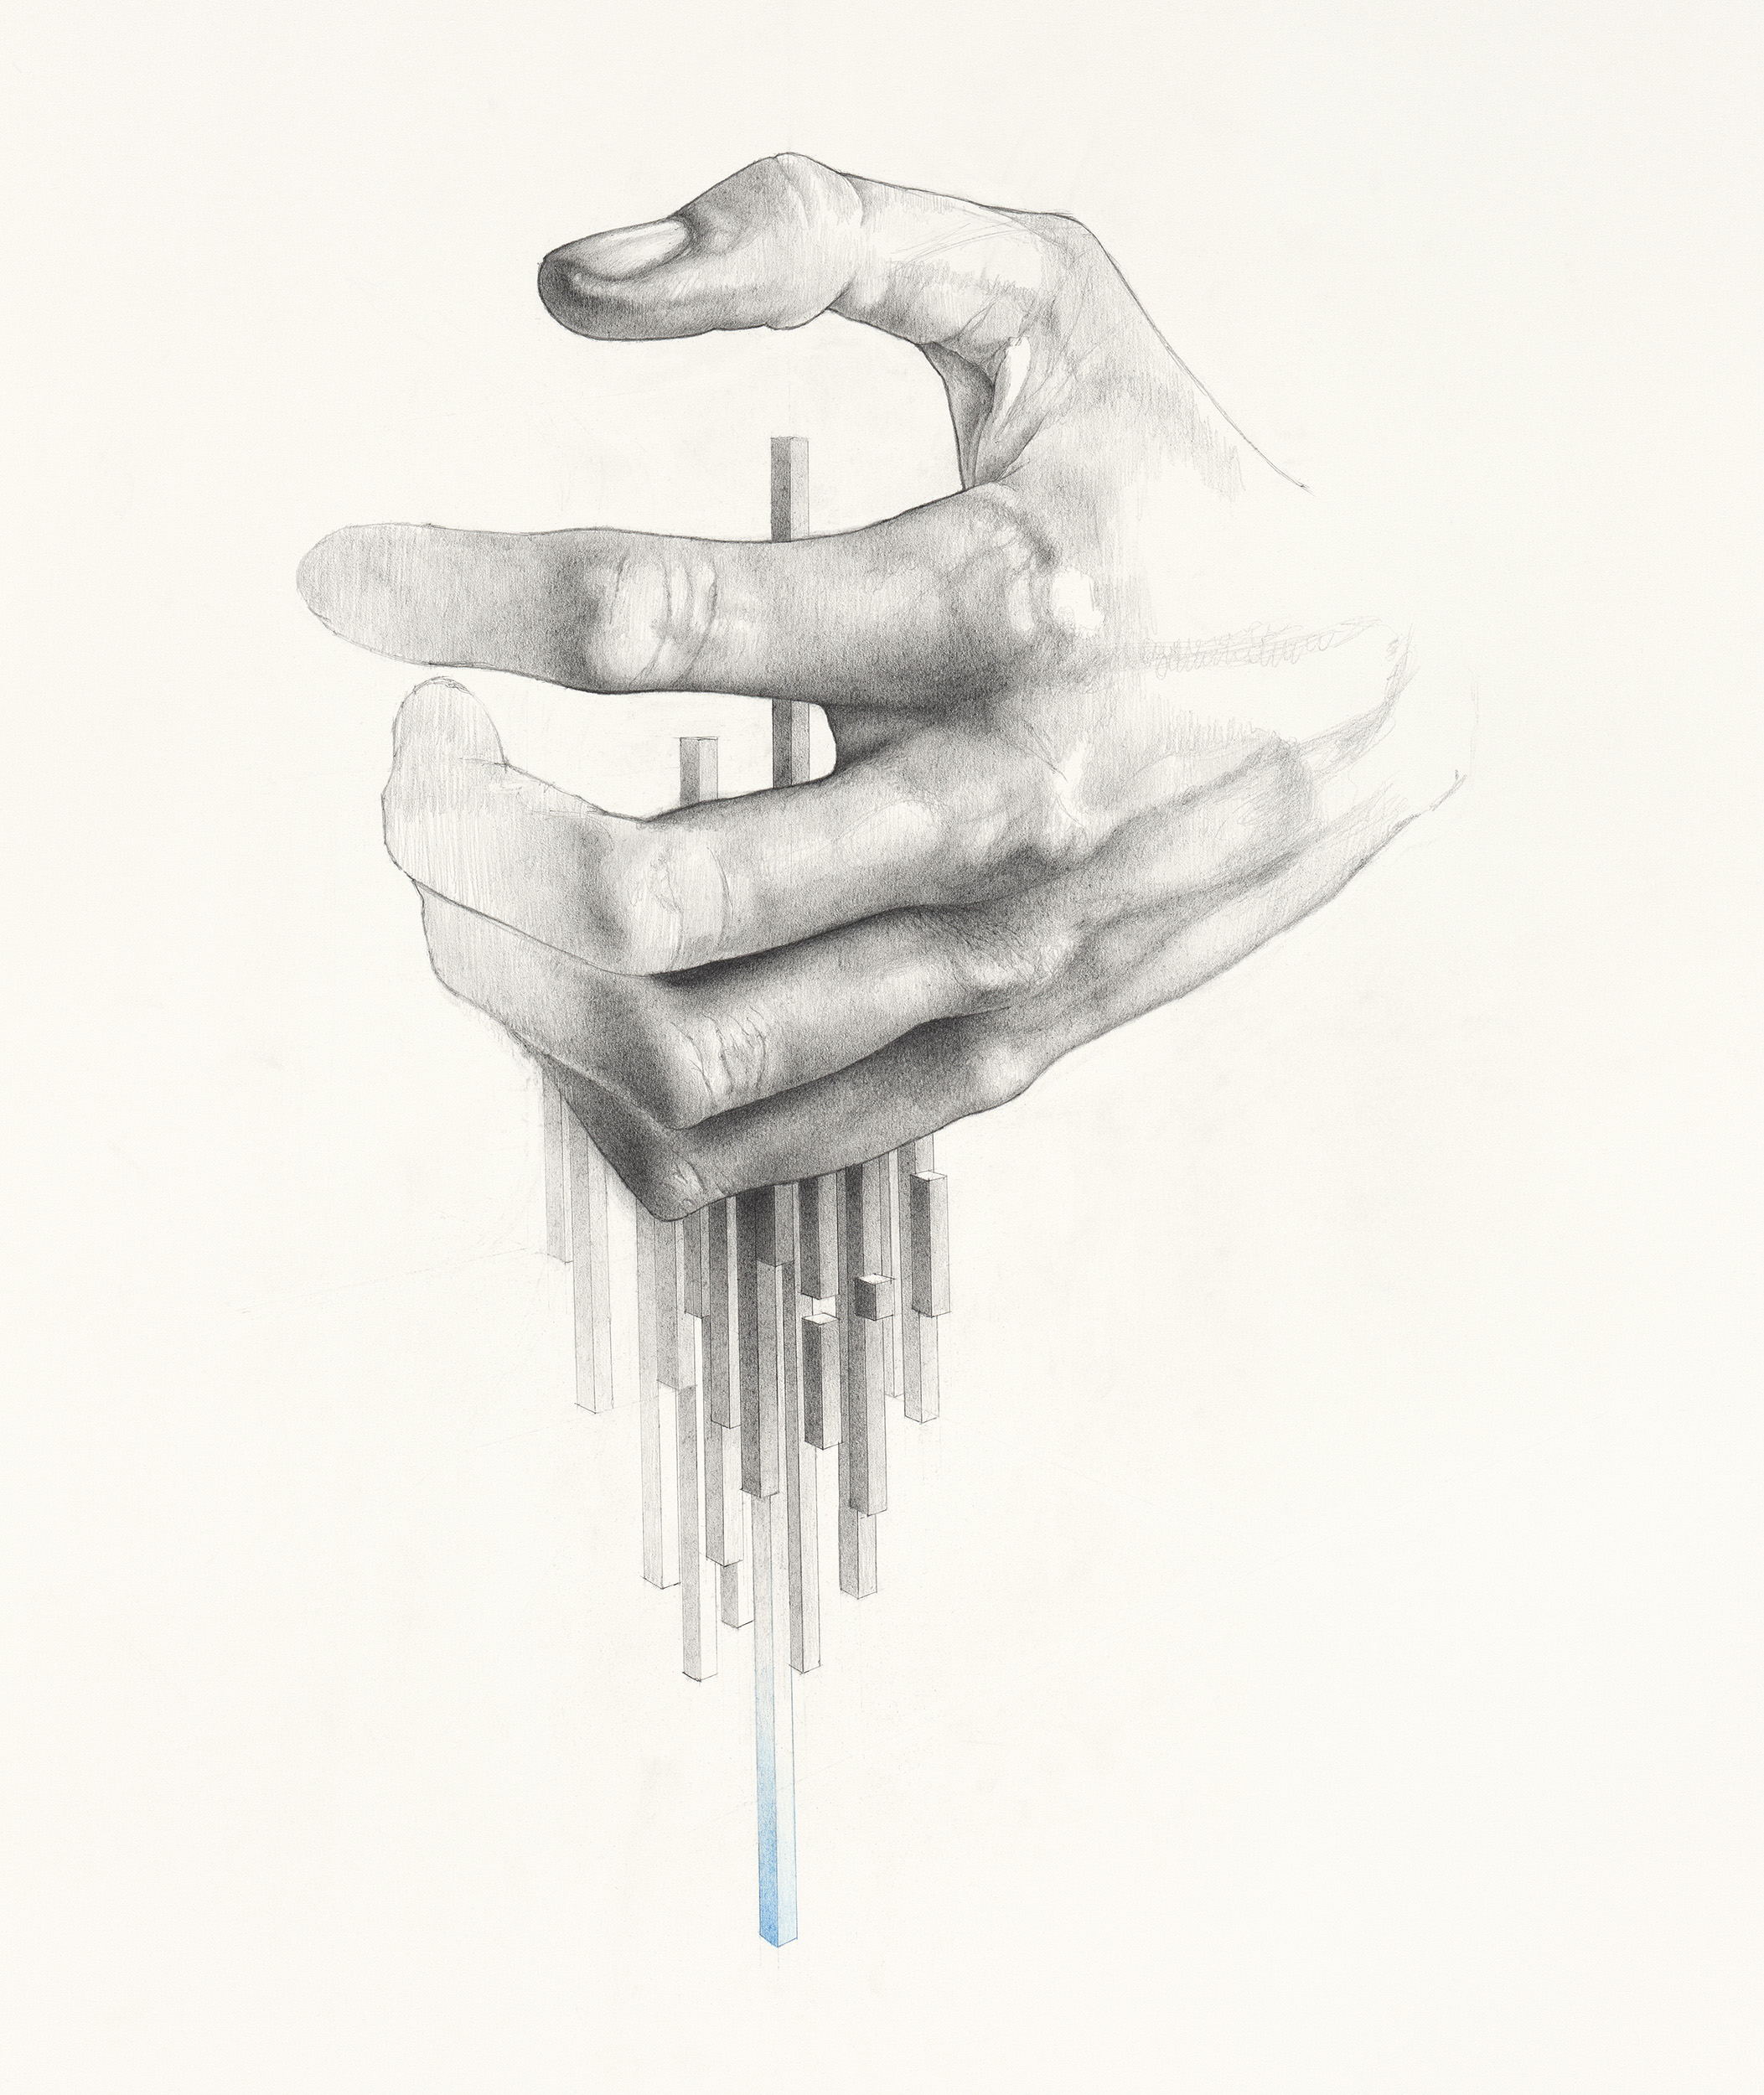 Workshop drawing hands with a pencil